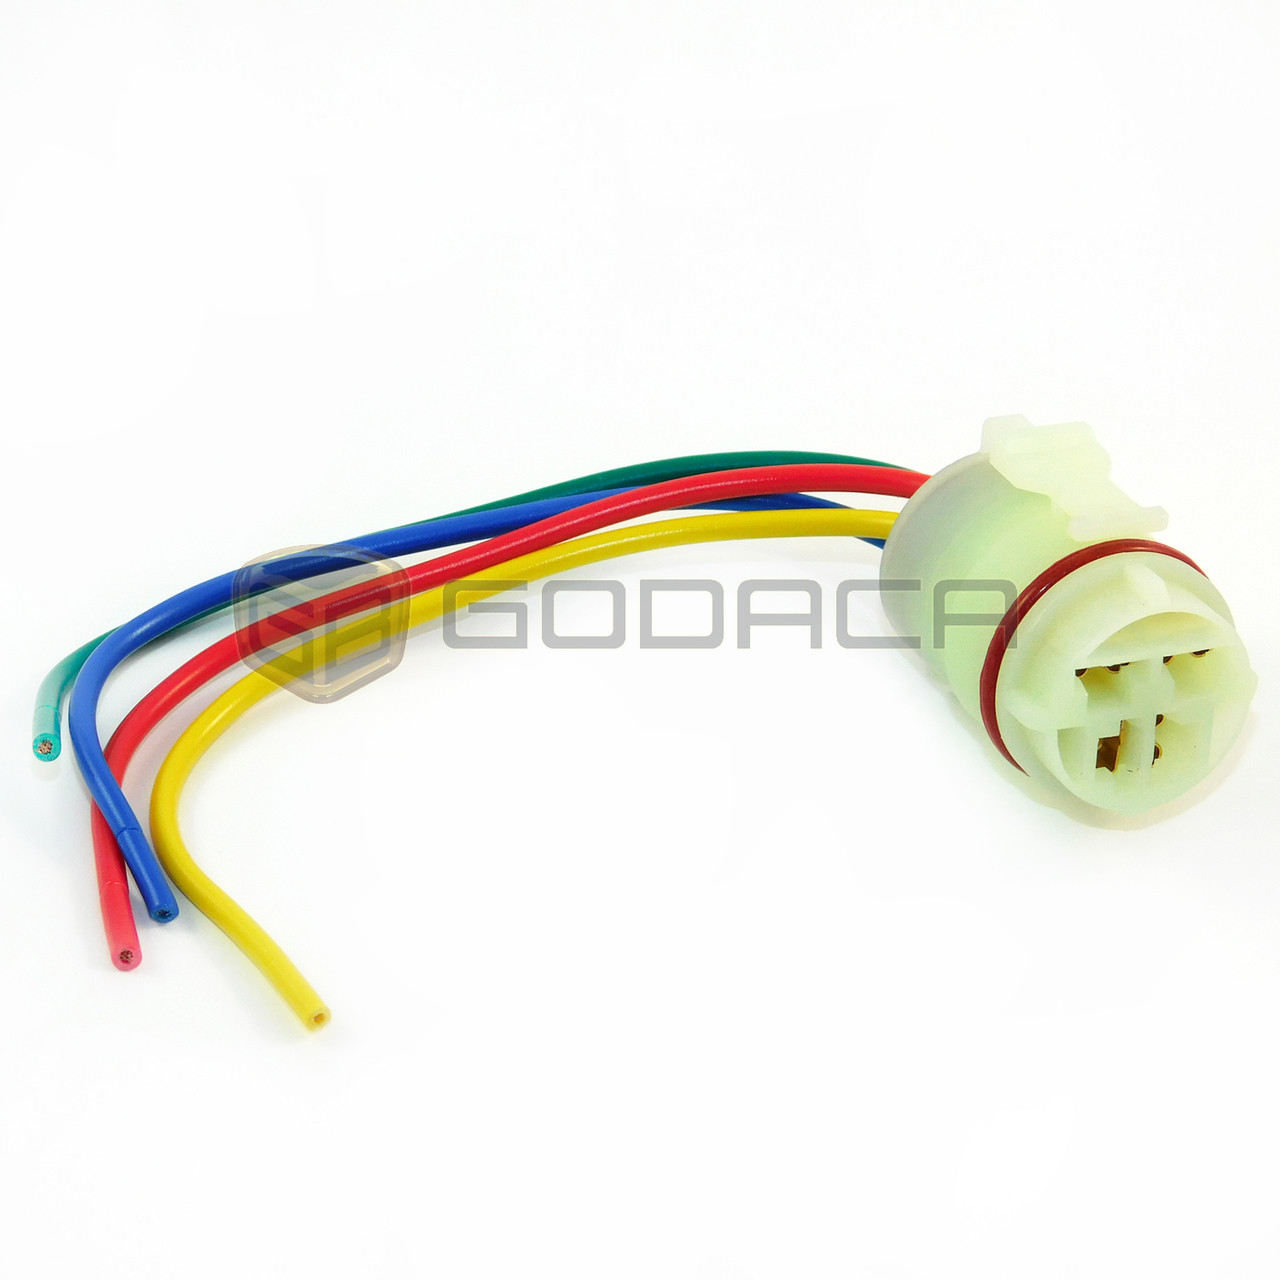 small resolution of 1 x 4 way connector alternator repair plug harness universal for gm gm wiring harness repair